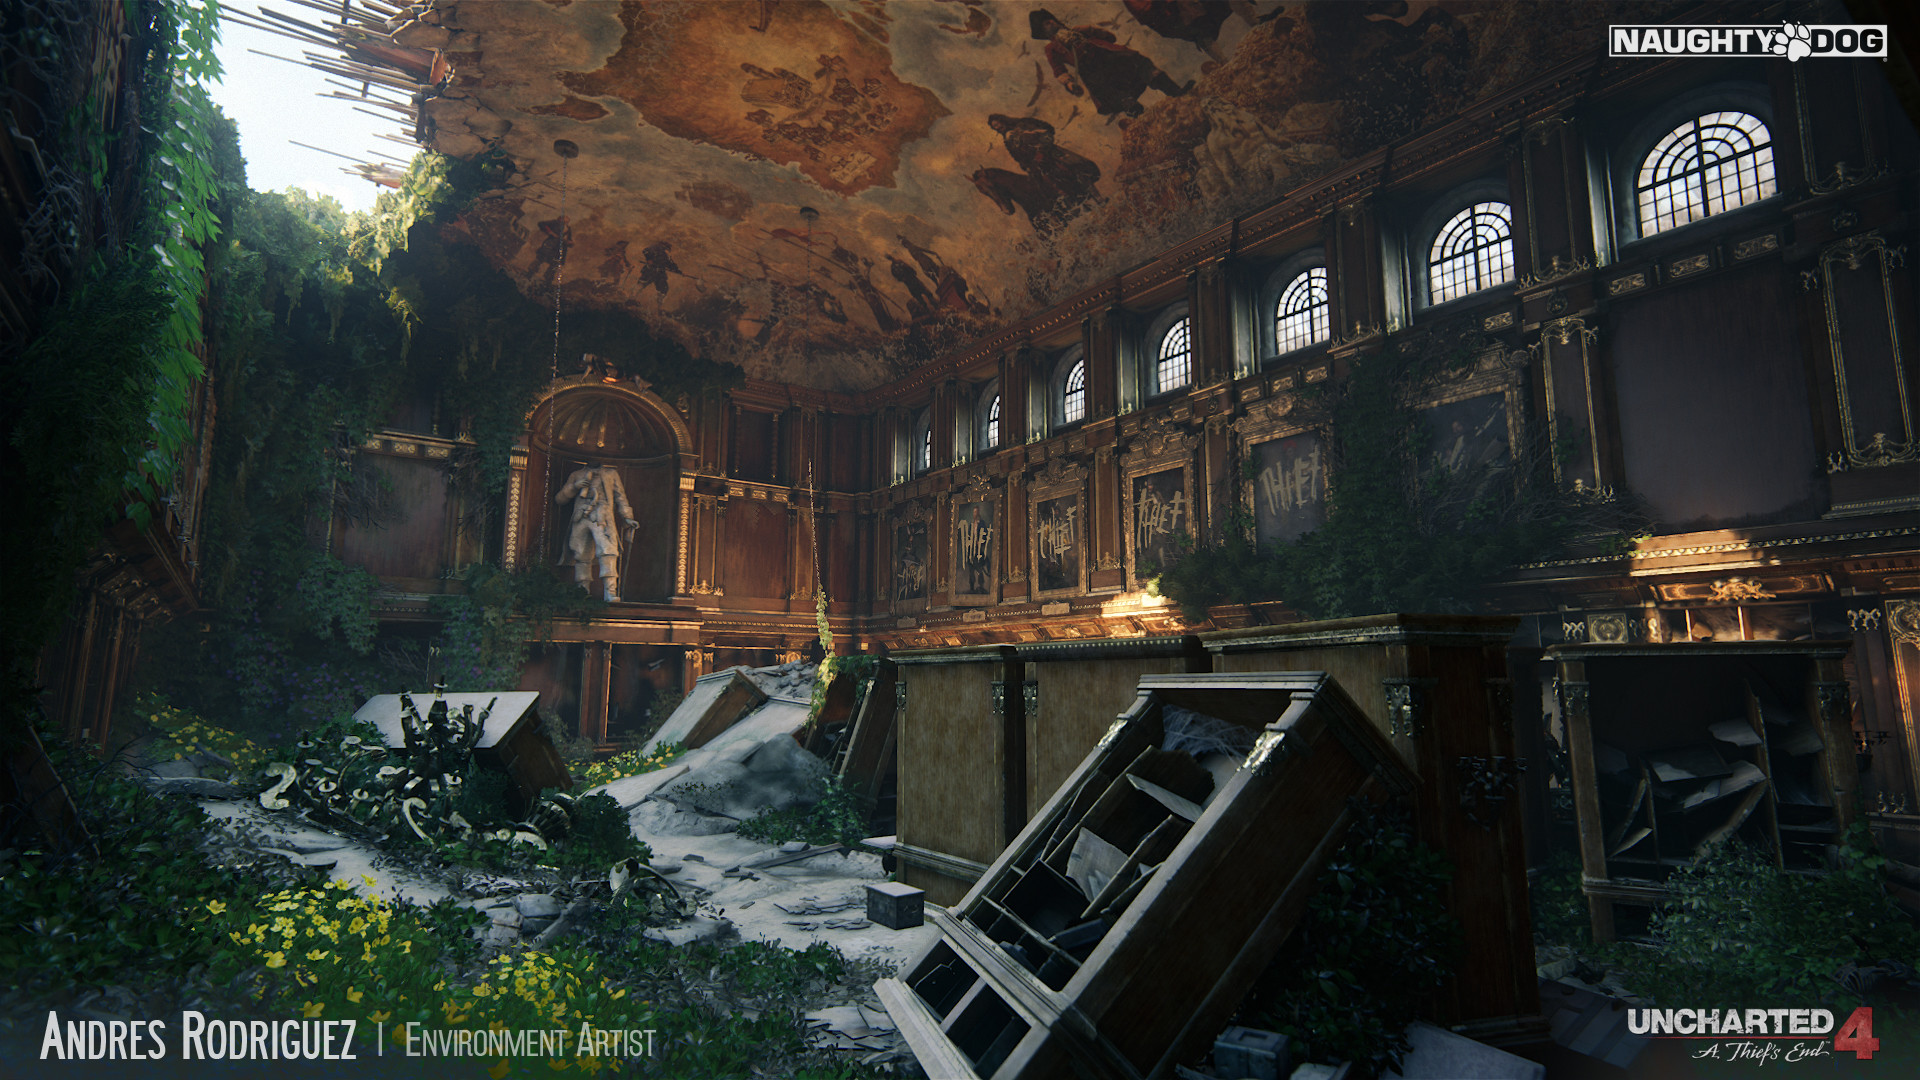 andres rodriguez - uncharted 4